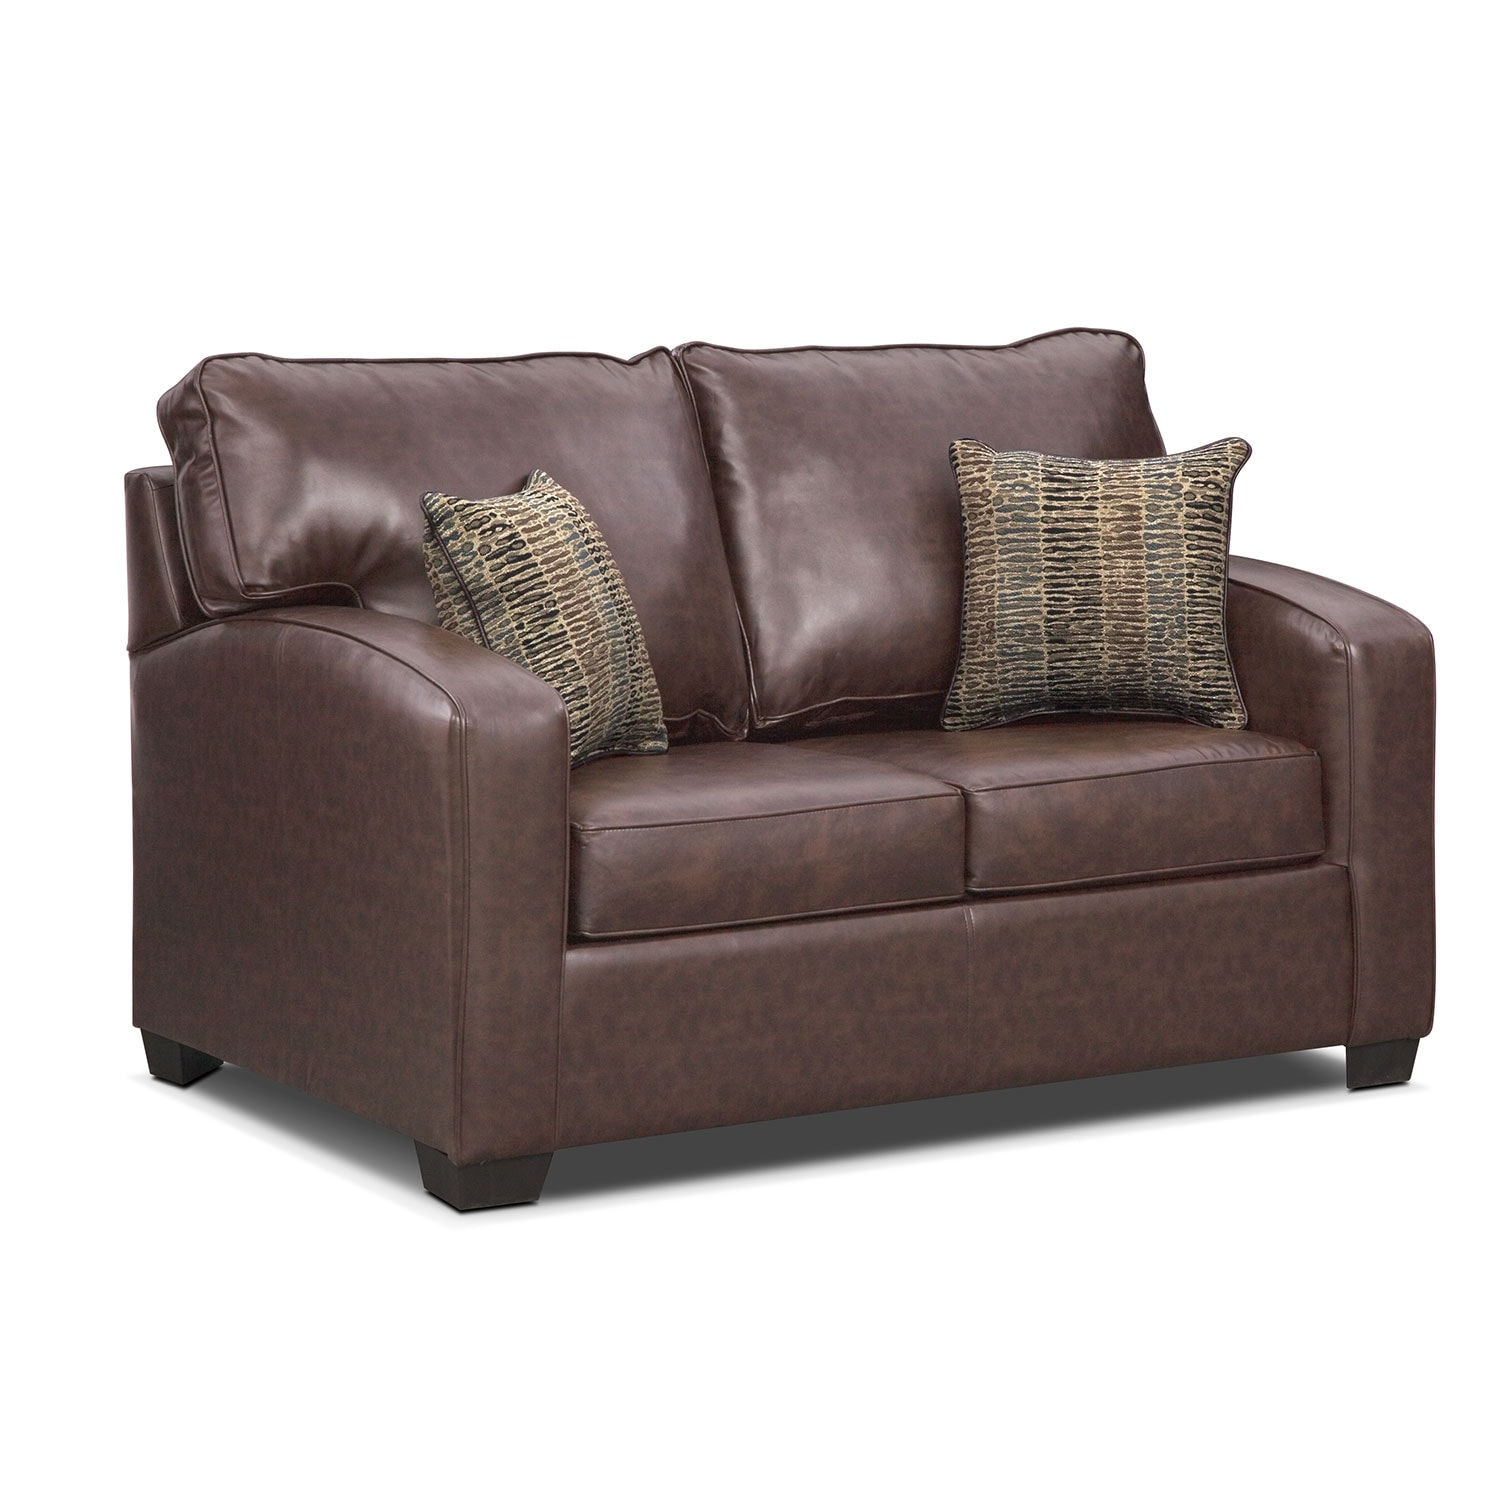 Brookline Twin Innerspring Sleeper Sofa Brown Value City Furniture